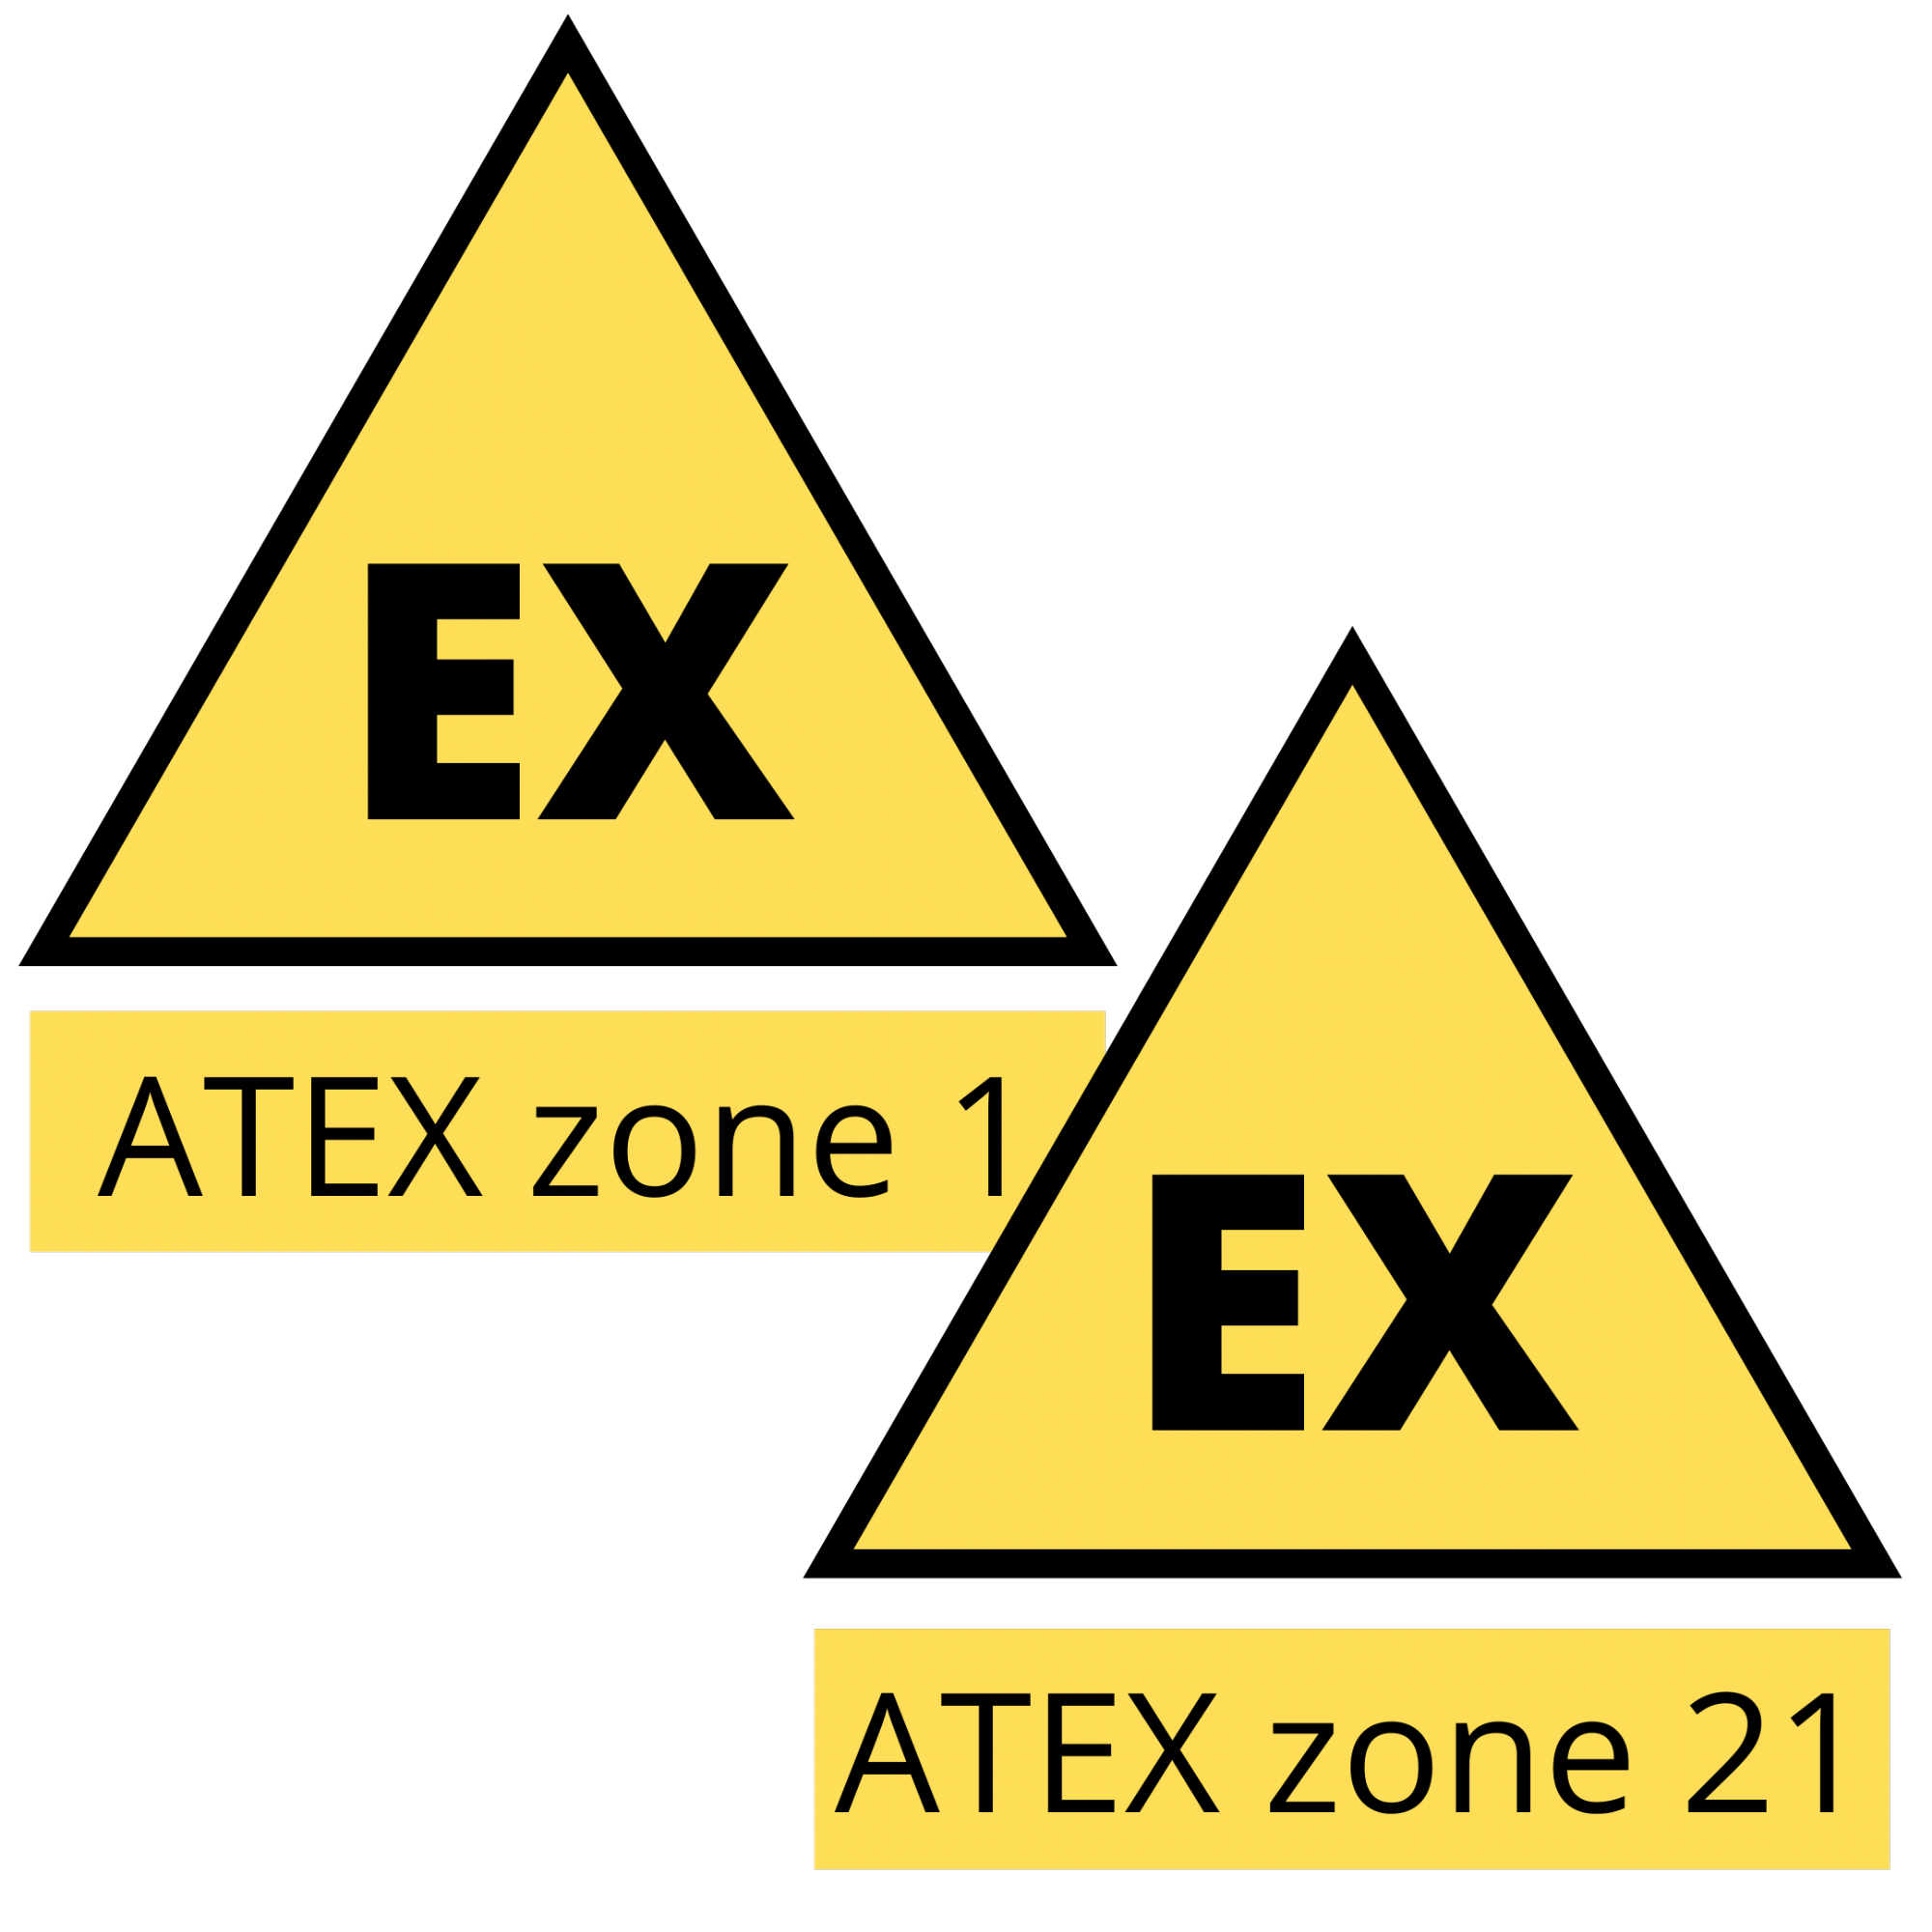 ATEX vibration monitors for zone 1 and zone 21